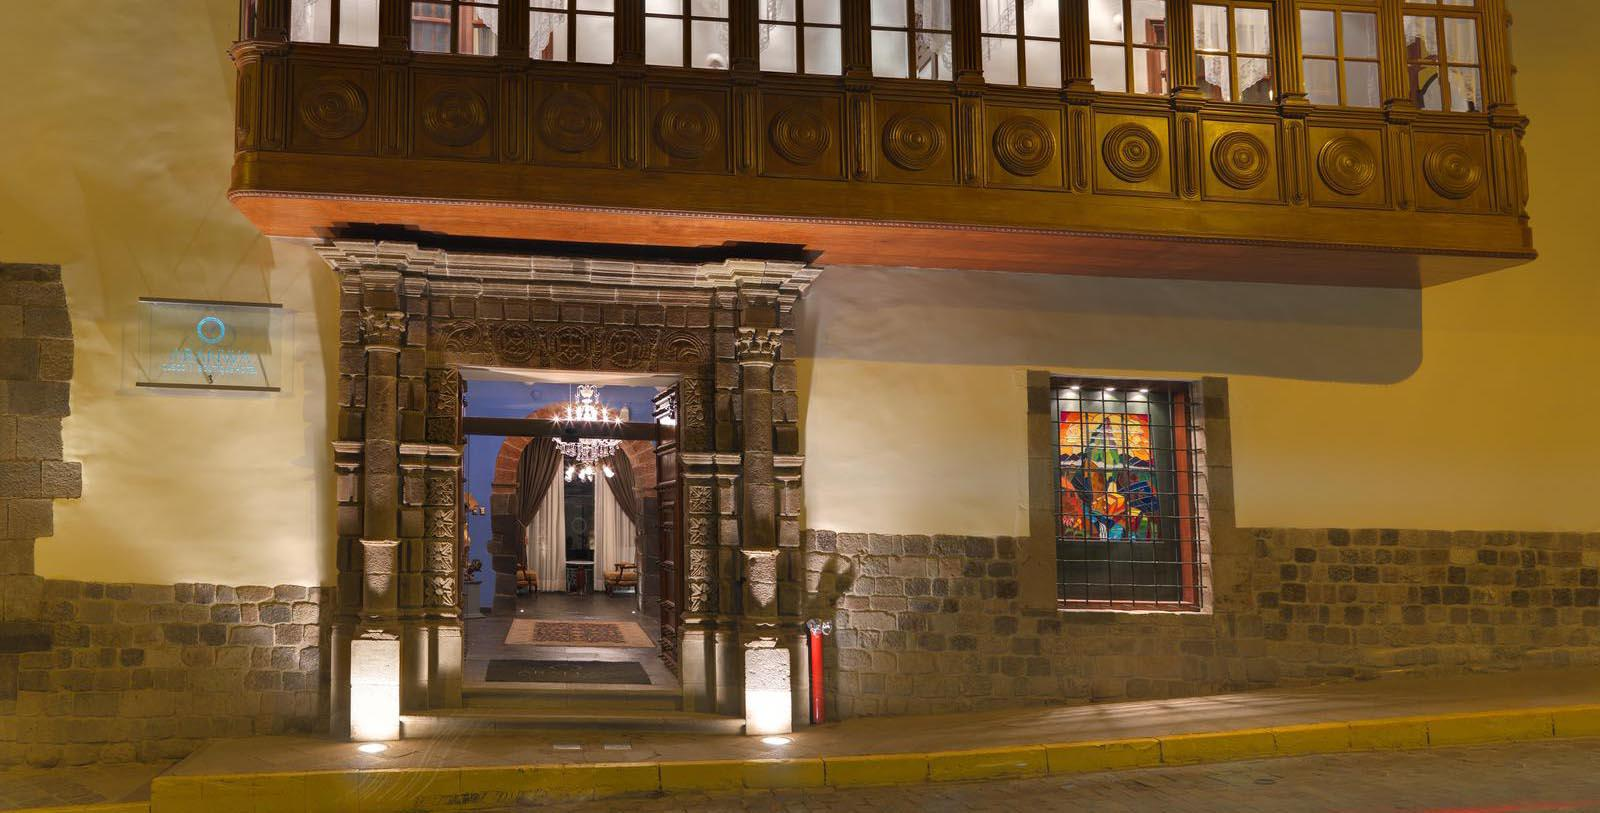 Image of hotel exterior front entrance Aranwa Cusco Boutique Hotel, 1560, Member of Historic Hotels Worldwide, in Cusco, Peru, Special Offers, Discounted Rates, Families, Romantic Escape, Honeymoons, Anniversaries, Reunions